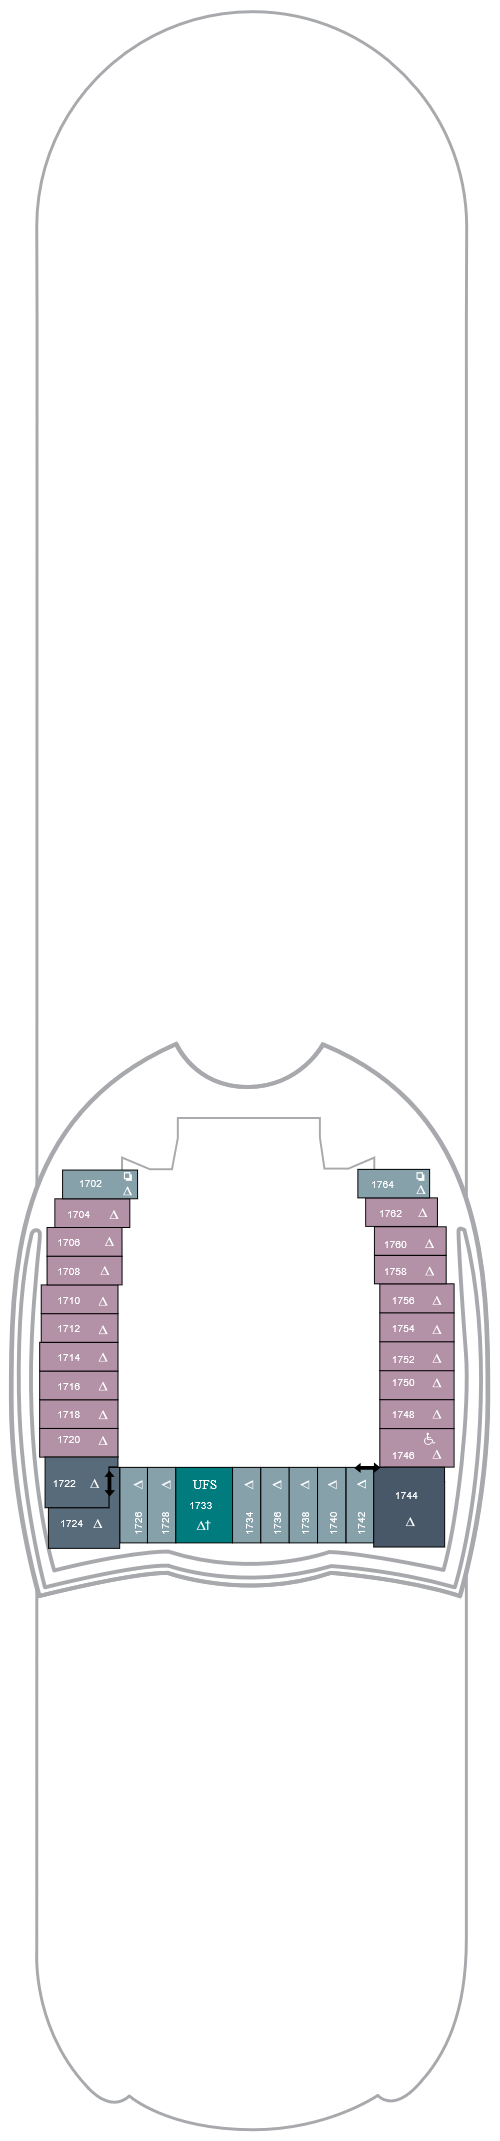 Symphony Of The Seas Deck 18 layout